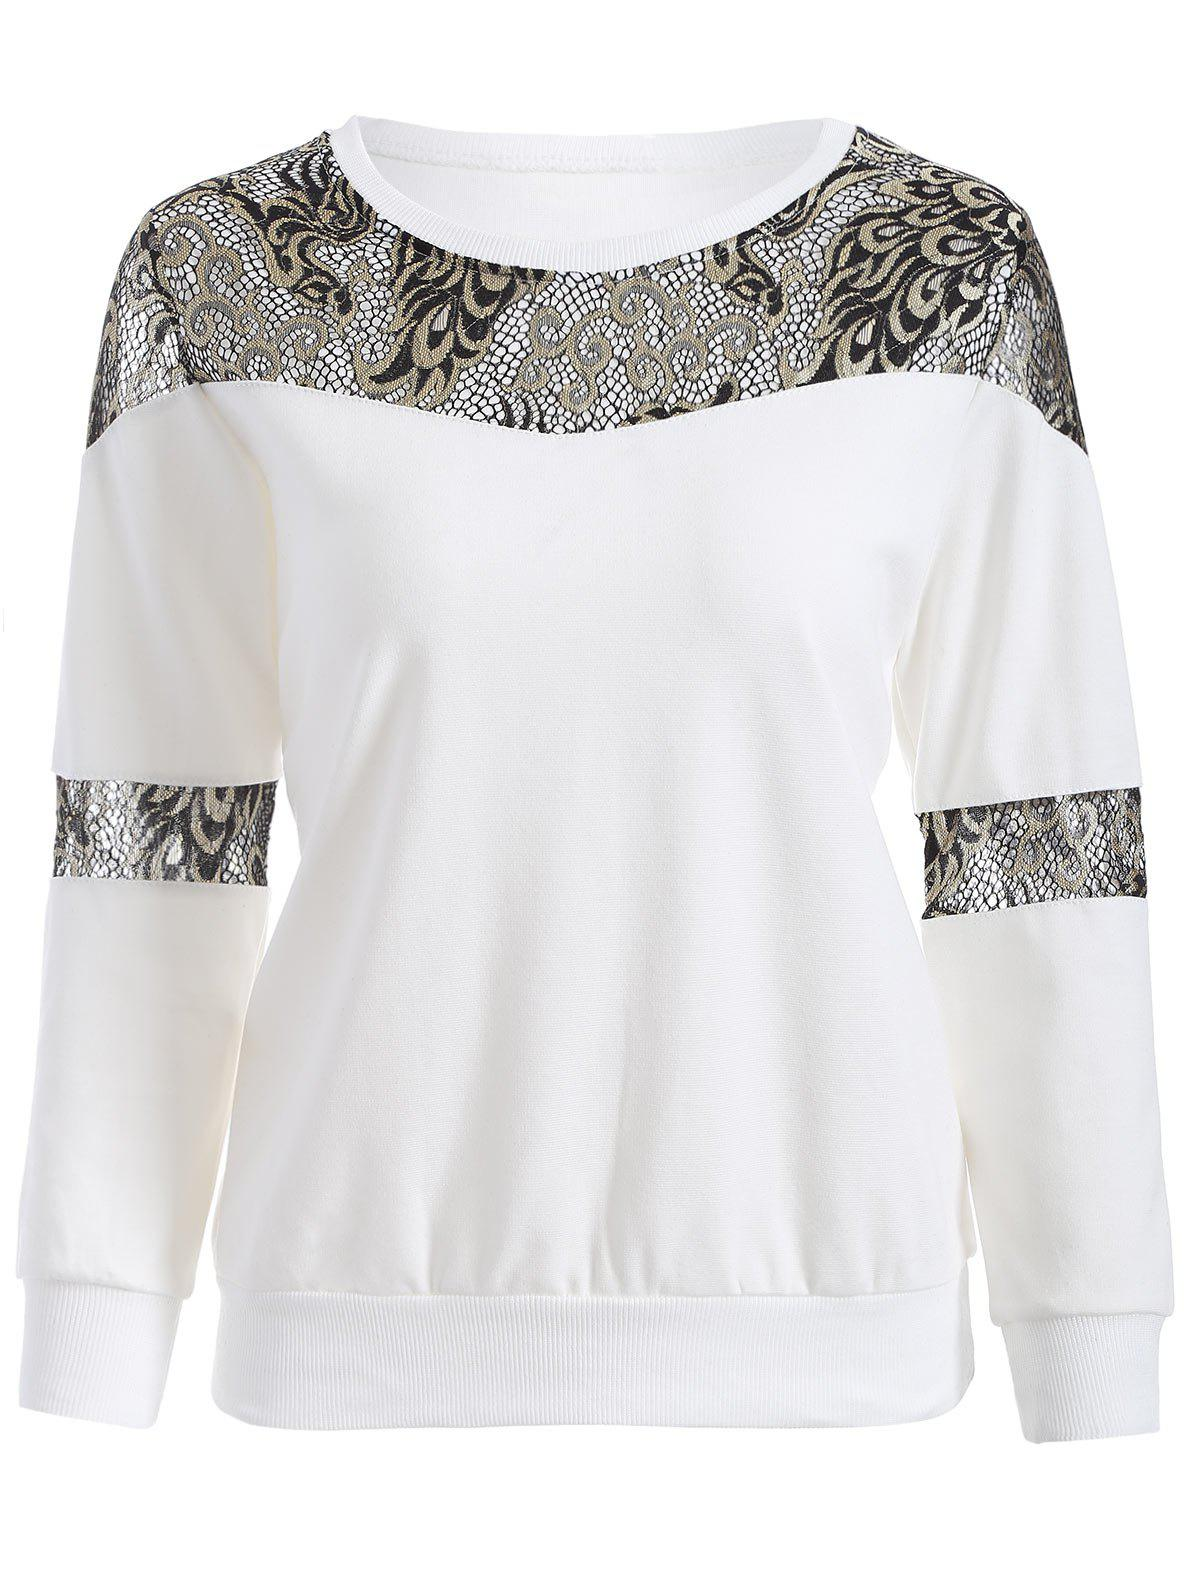 Empiècements en dentelle Sweatshirt - Blanc 2XL